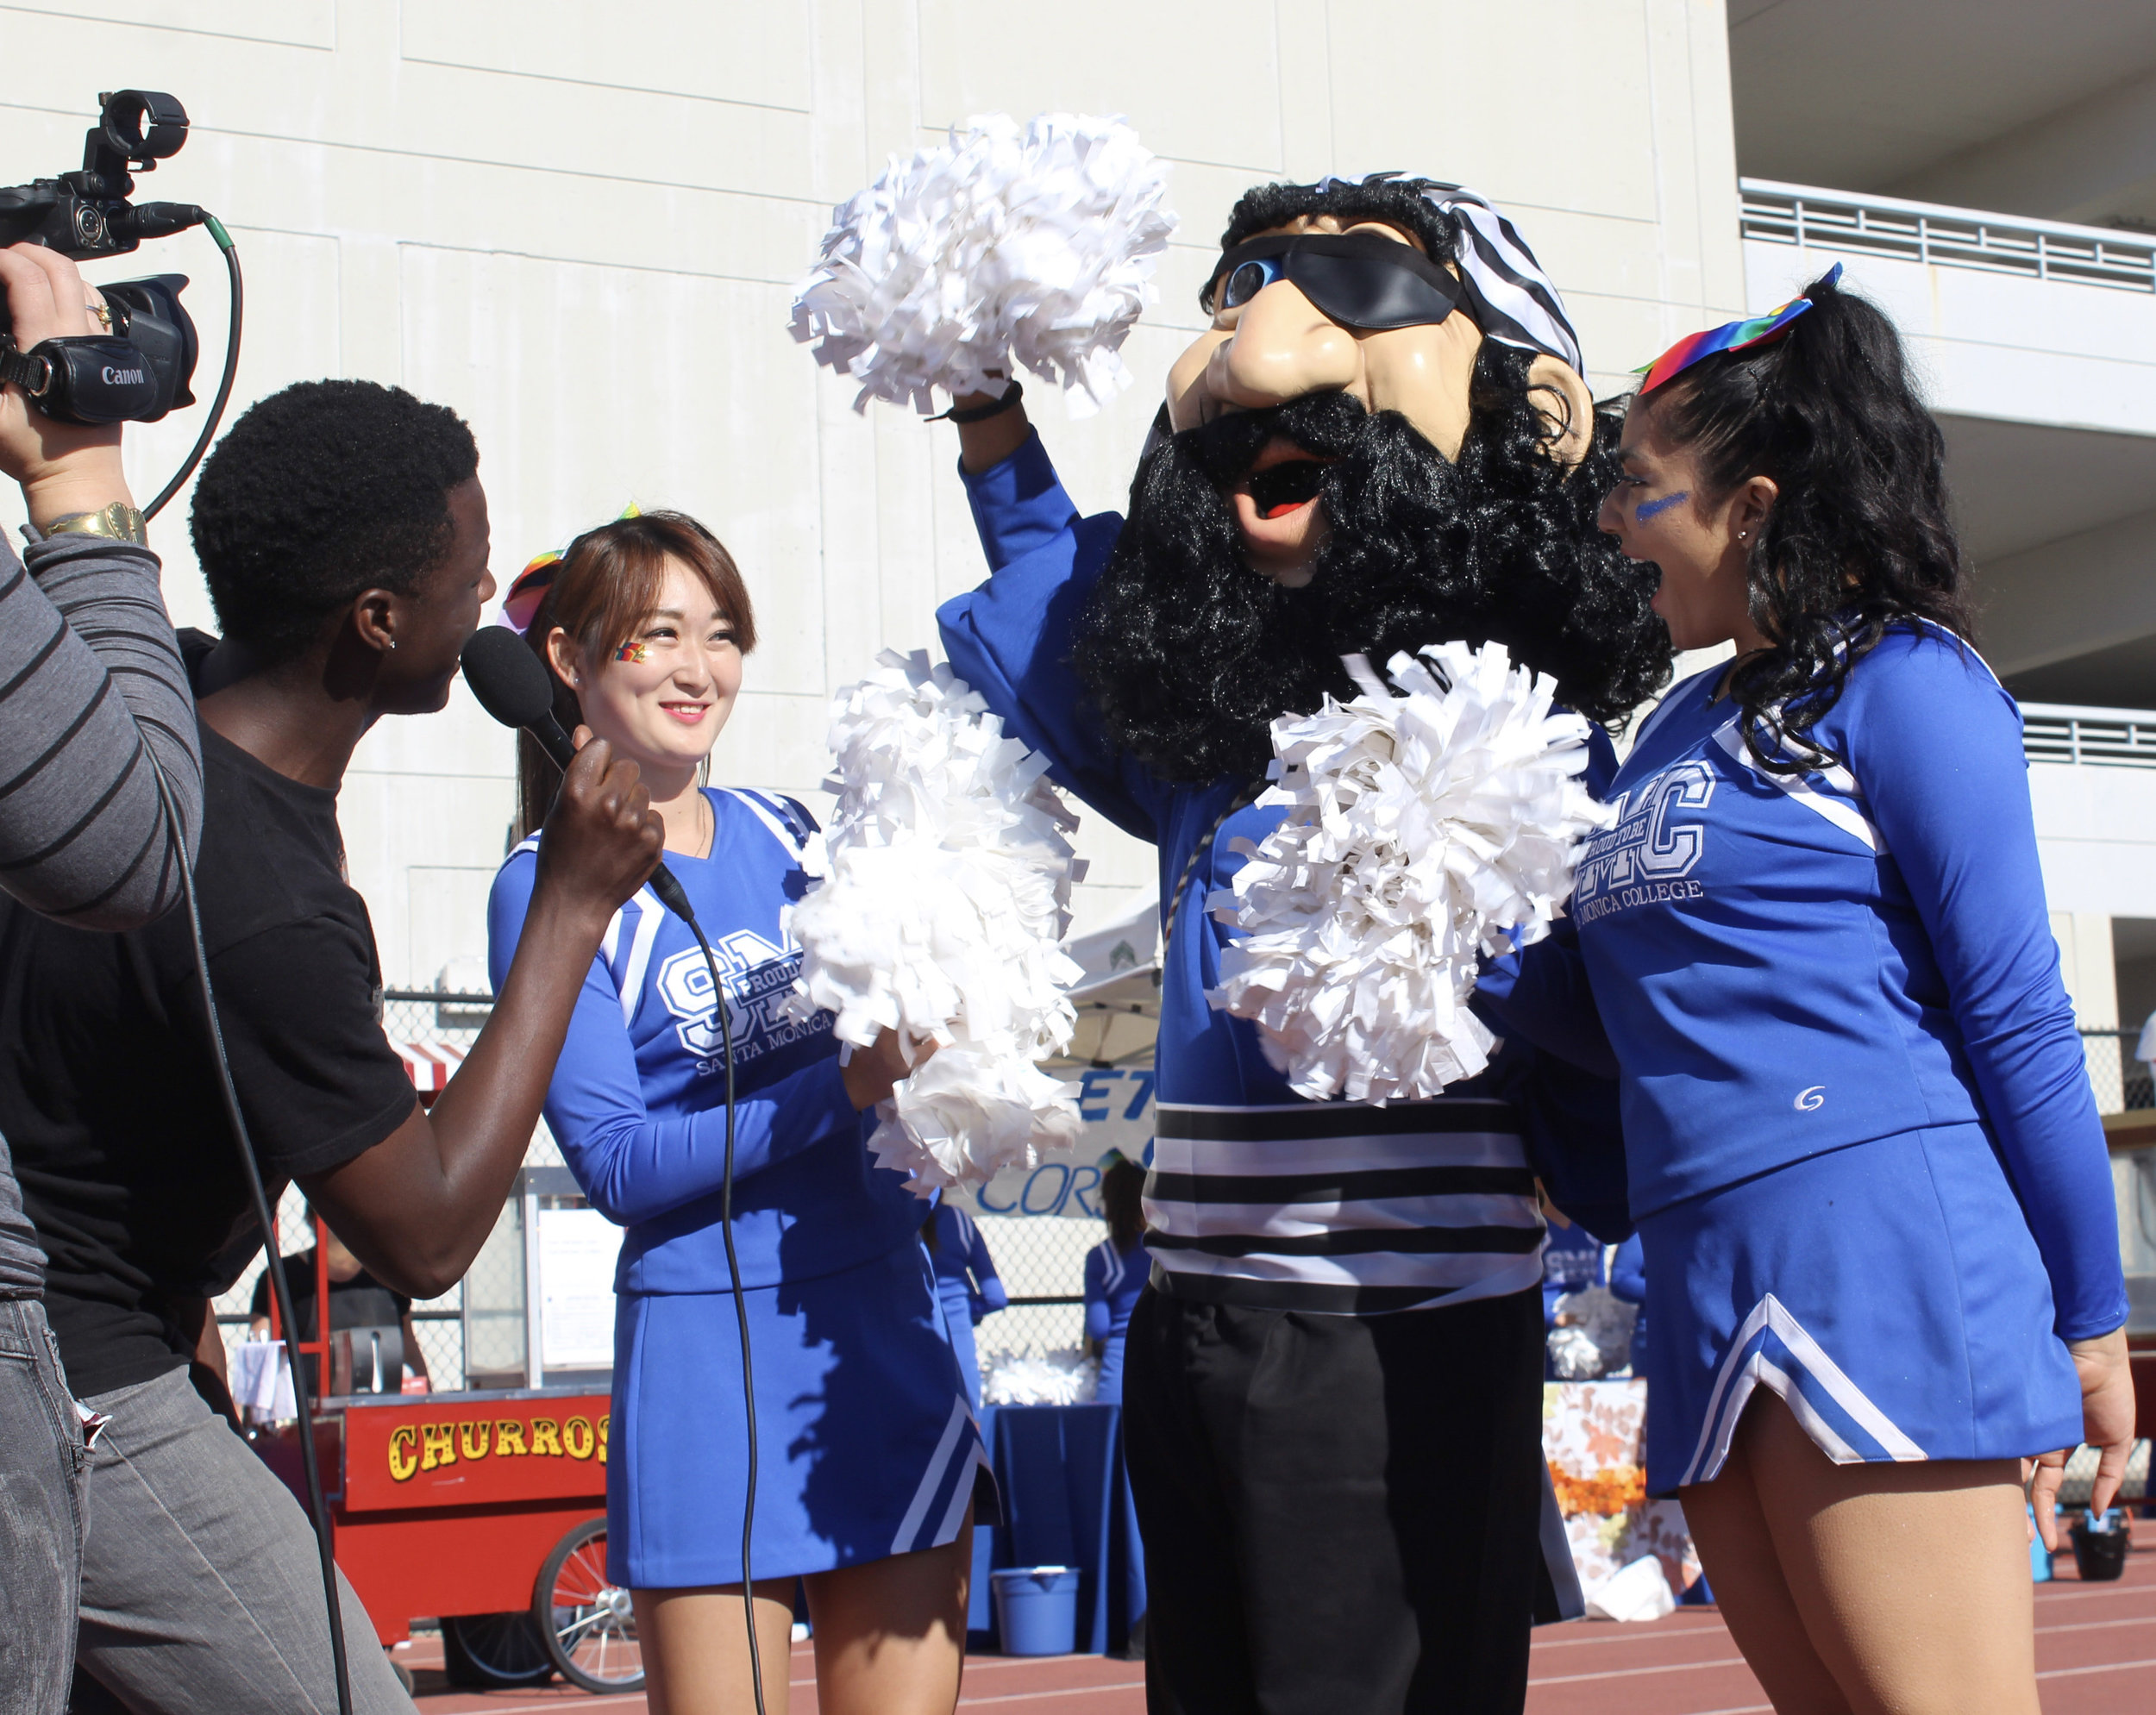 Santa Monica College student and Urban Mediamakers West Club member Sambie Mwafulirwa interviewing Cheer Club members and the Corsiar mascot during the Homecoming Tailgate Party Saturday morning on November 4, 2017 on the athletic field at SMC. UMW club members filmed the Tailgate Party festivities. (Photo by Jessica Uhler)